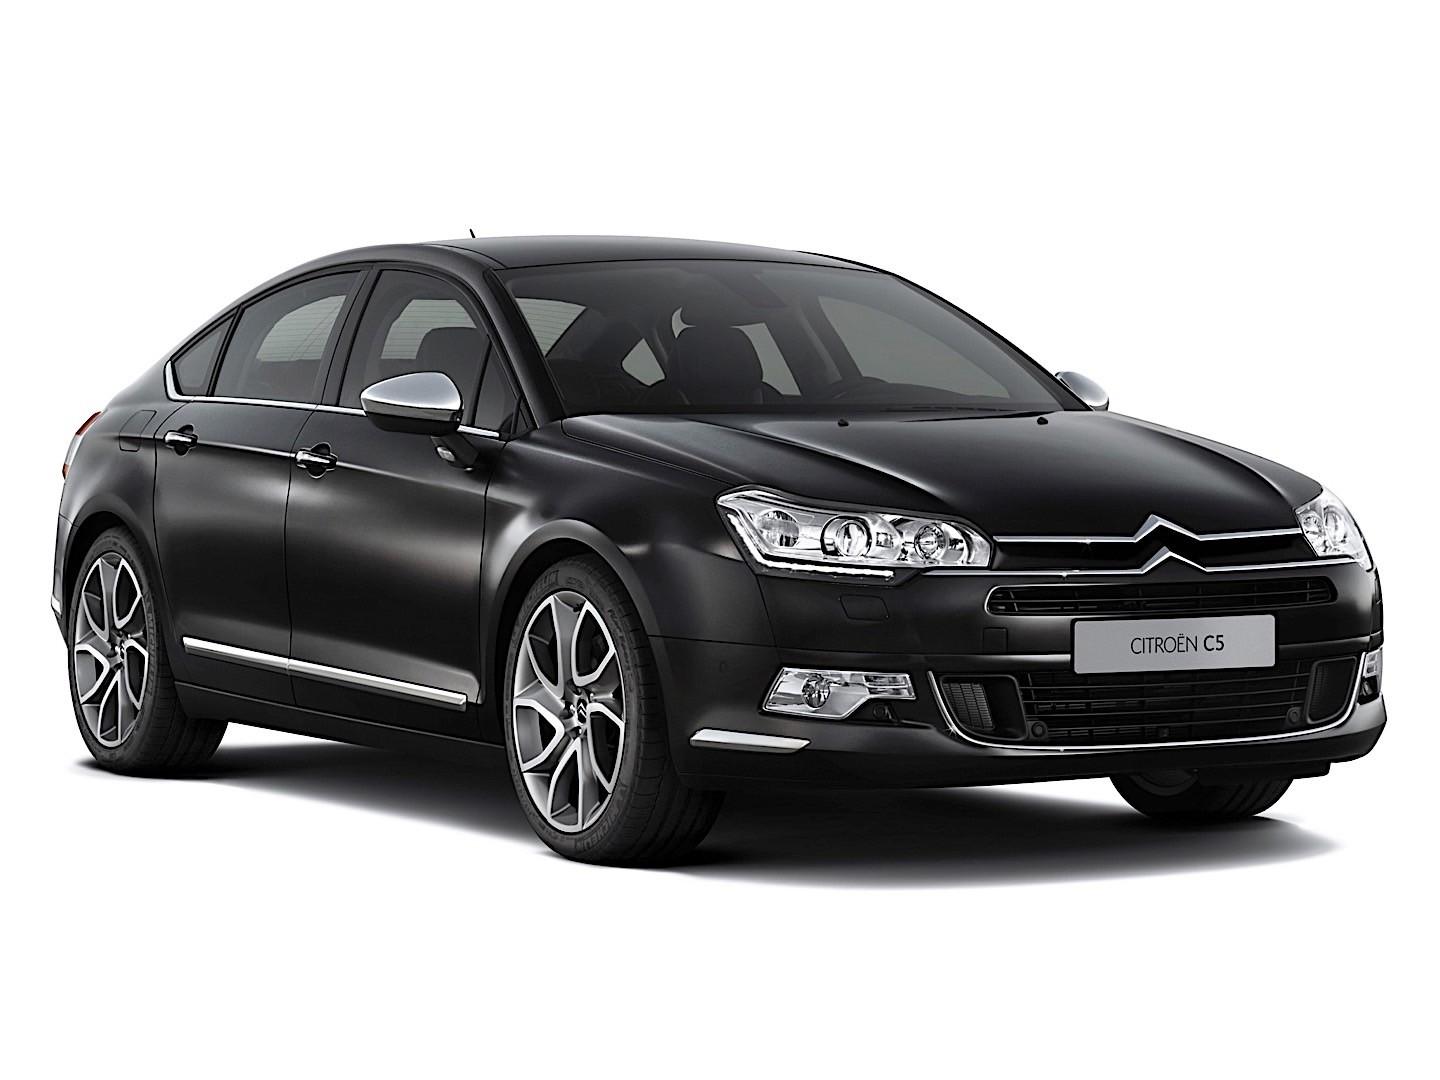 citroen c5 sedan 2010 2011 2012 2013 2014 2015 2016 autoevolution. Black Bedroom Furniture Sets. Home Design Ideas